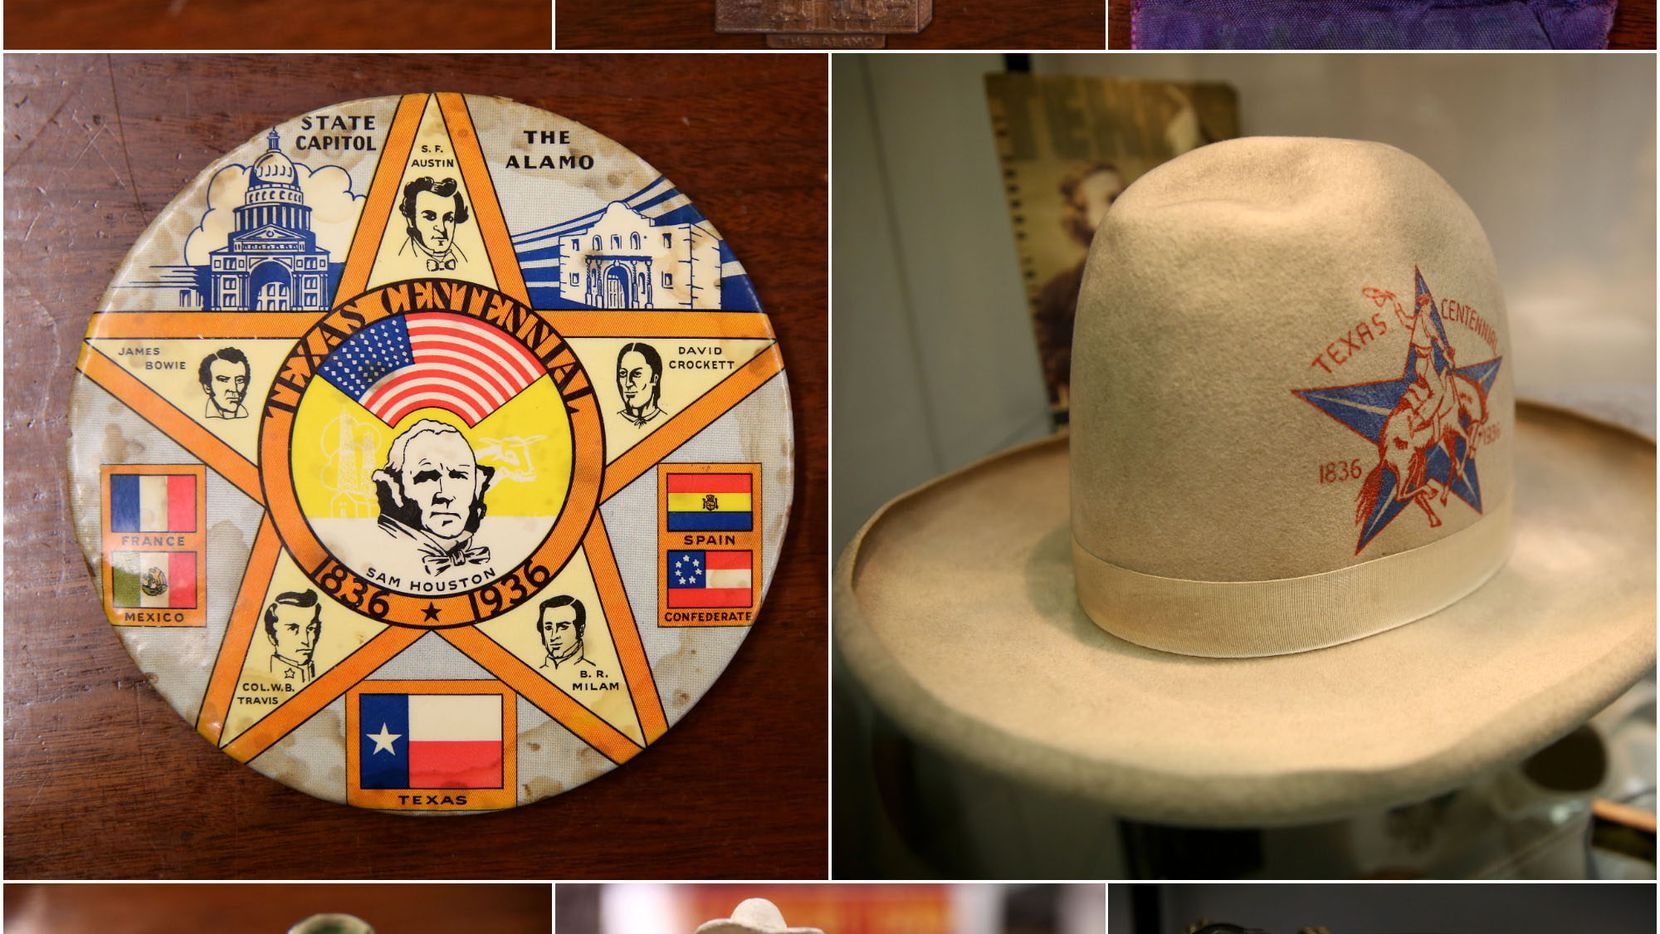 """Some of the quirky and memorable pieces in the State Fair's Kavanaugh collection and the other archives from Fair Park's past, photographed at the State Fair of Texas administrative office at Fair Park in Dallas on Wednesday, Jan. 10, 2018. Clockwise from top left: 1) A souvenir pin cushion from the Texas Centennial Exposition in 1936 -- 2) A souvenir pin from the Texas Centennial Exposition in 1936, with the rivers of Texas highlighted on the state map -- 3) A vintage ribbon for the best dozen white eggs -- 4) A commemorative hat from the Texas Centennial Exposition in 1936 worn by oil tycoon and Dallas billionaire H.L. Hunt, and later his son Lamar Hunt. It is one of many similar hats on display around Fair Park and in the Kavanaugh collection. -- 5) The Pan American Lock, which was made for the opening ceremonies of the Greater Texas & Pan-American Exposition in 1937. The diamond-encrusted lock made with pearls is on display in the State Fair of Texas administration building year-round. -- 6) A ceramic statue of a """"Texas Cow Boy"""" souvenir from the Texas Centennial Exposition in 1936. -- 7) A clay water jug and cup set hand-painted in Mexico especially for the Texas Centennial Exposition in 1936. -- 8) A large commemorative button from the Texas Centennial Exposition in 1936."""